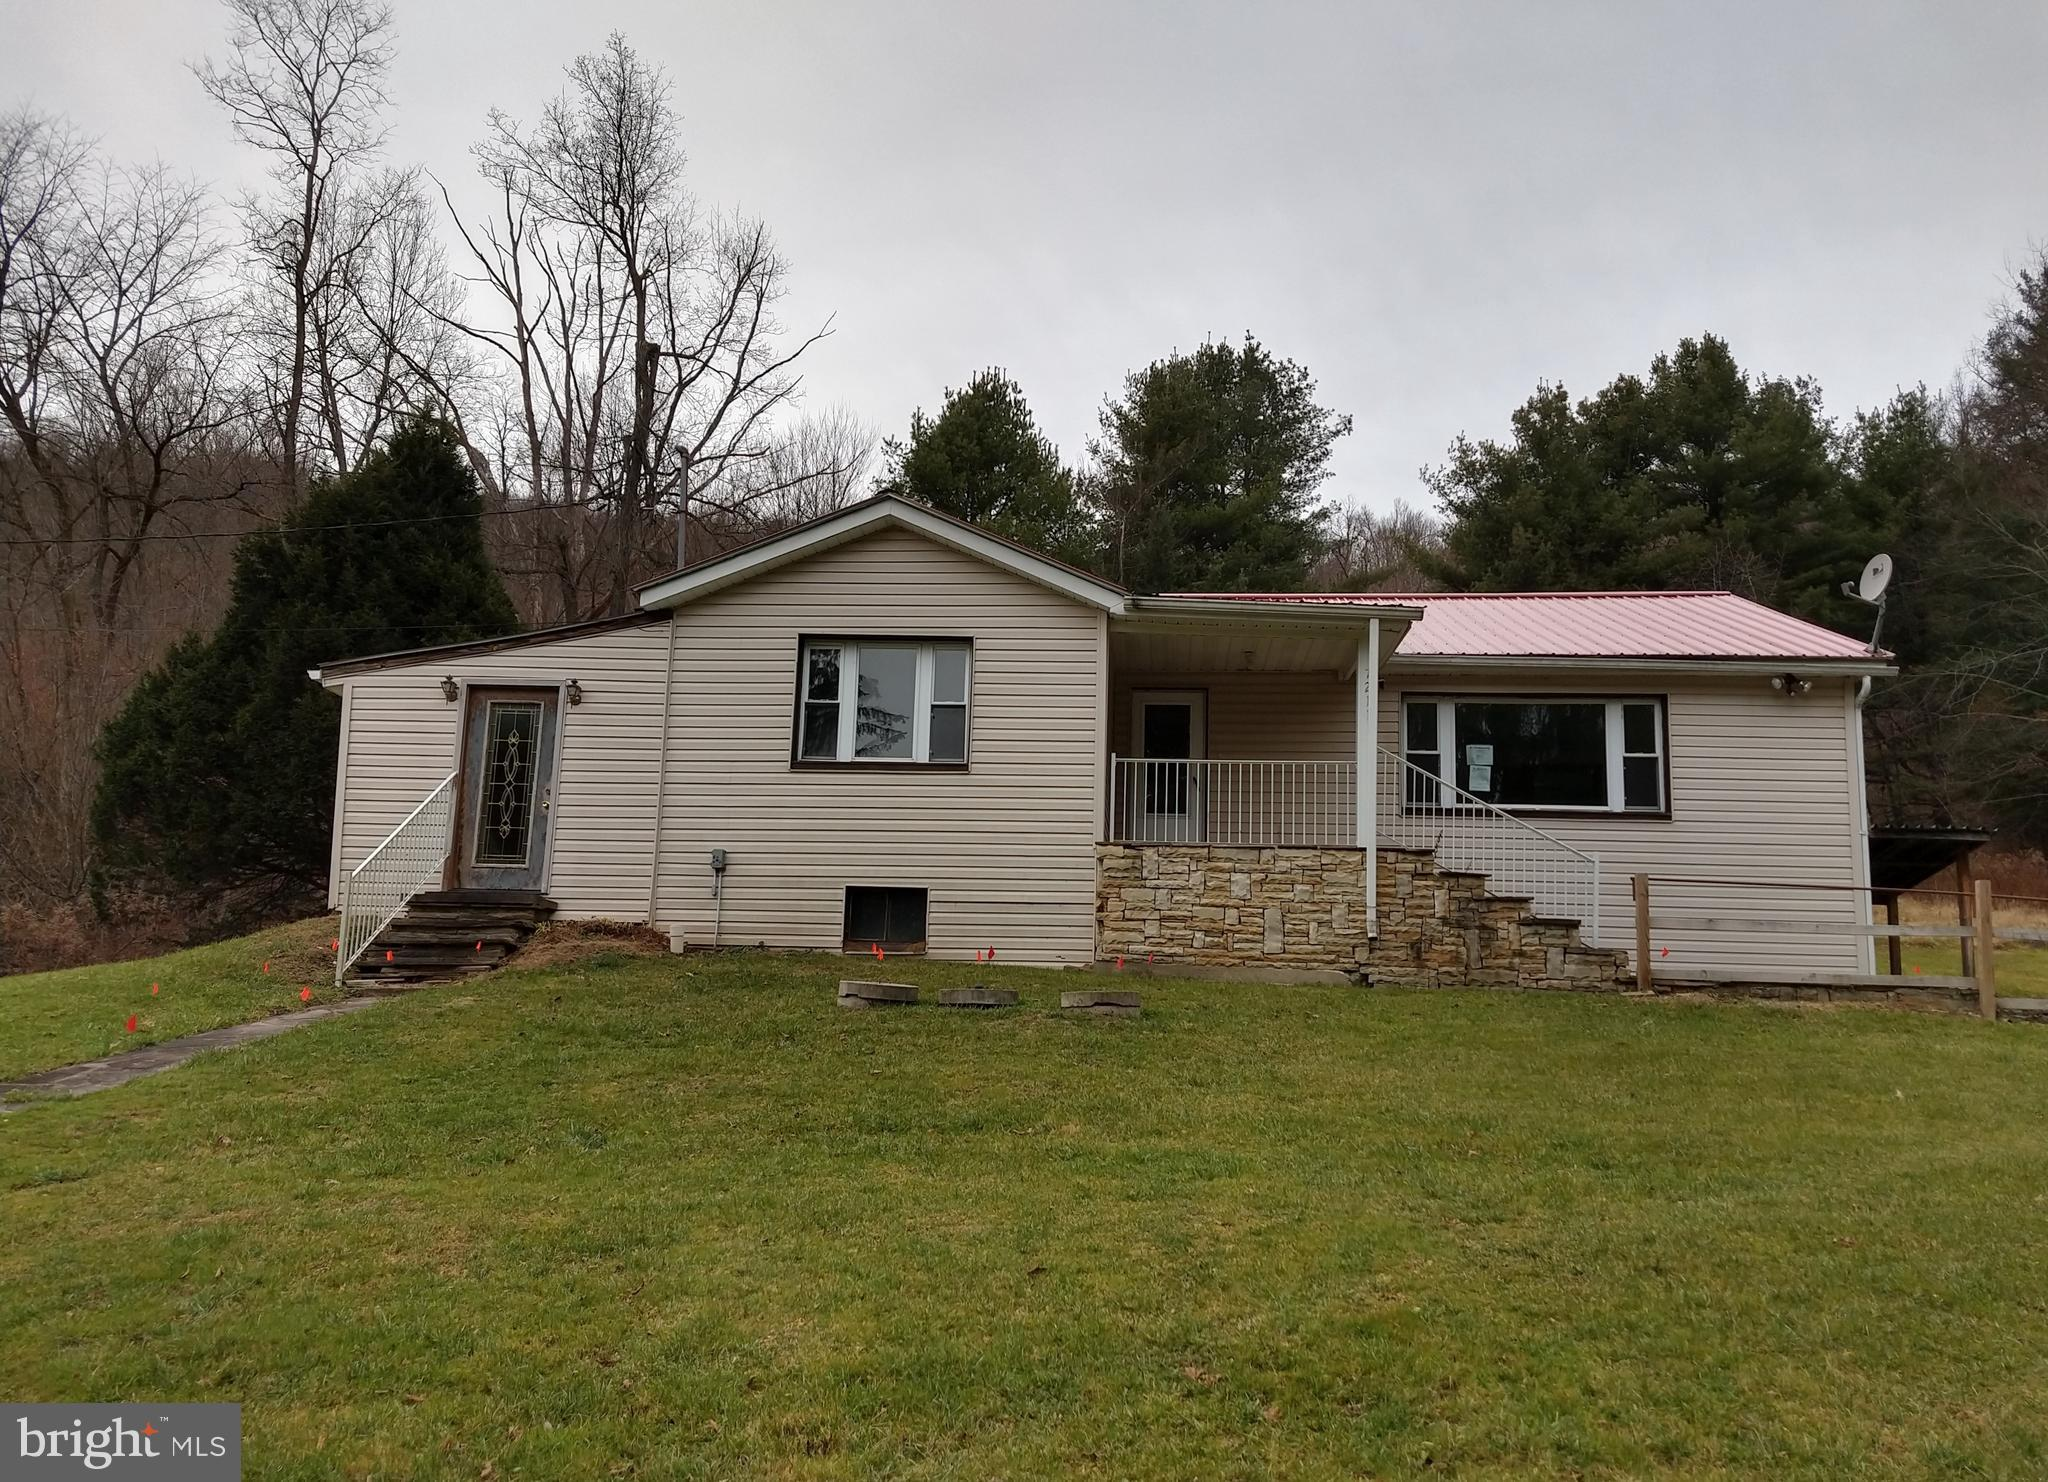 7211 NEW GERMANY ROAD, GRANTSVILLE, MD 21536